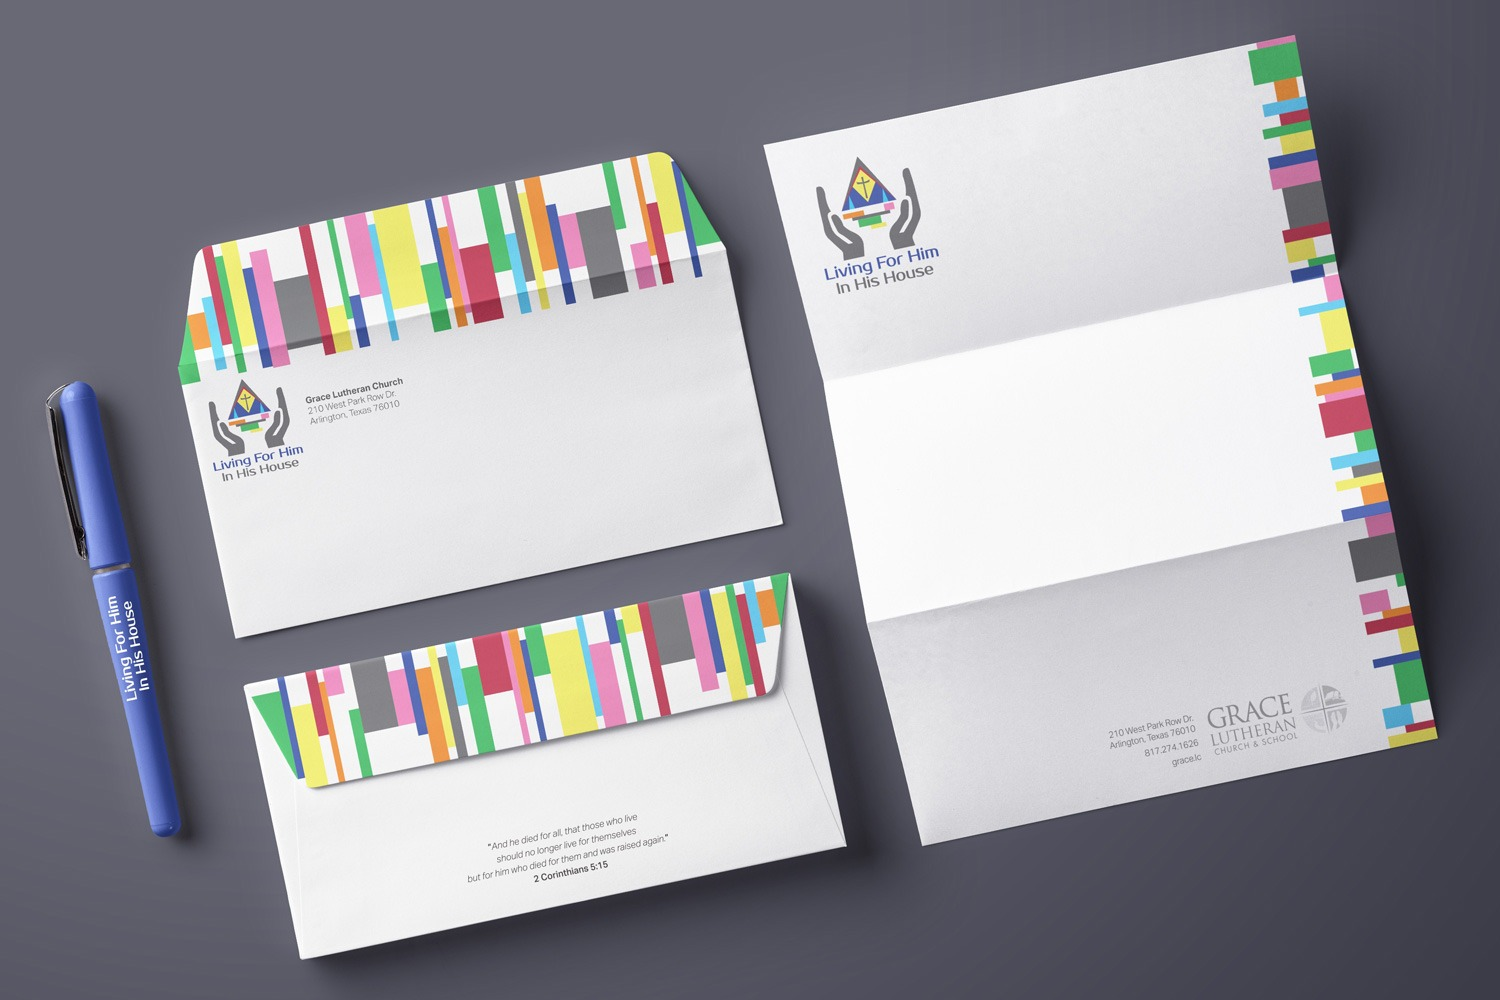 Church Stewardship Letterhead and envelope set design ideas for capital campaigns